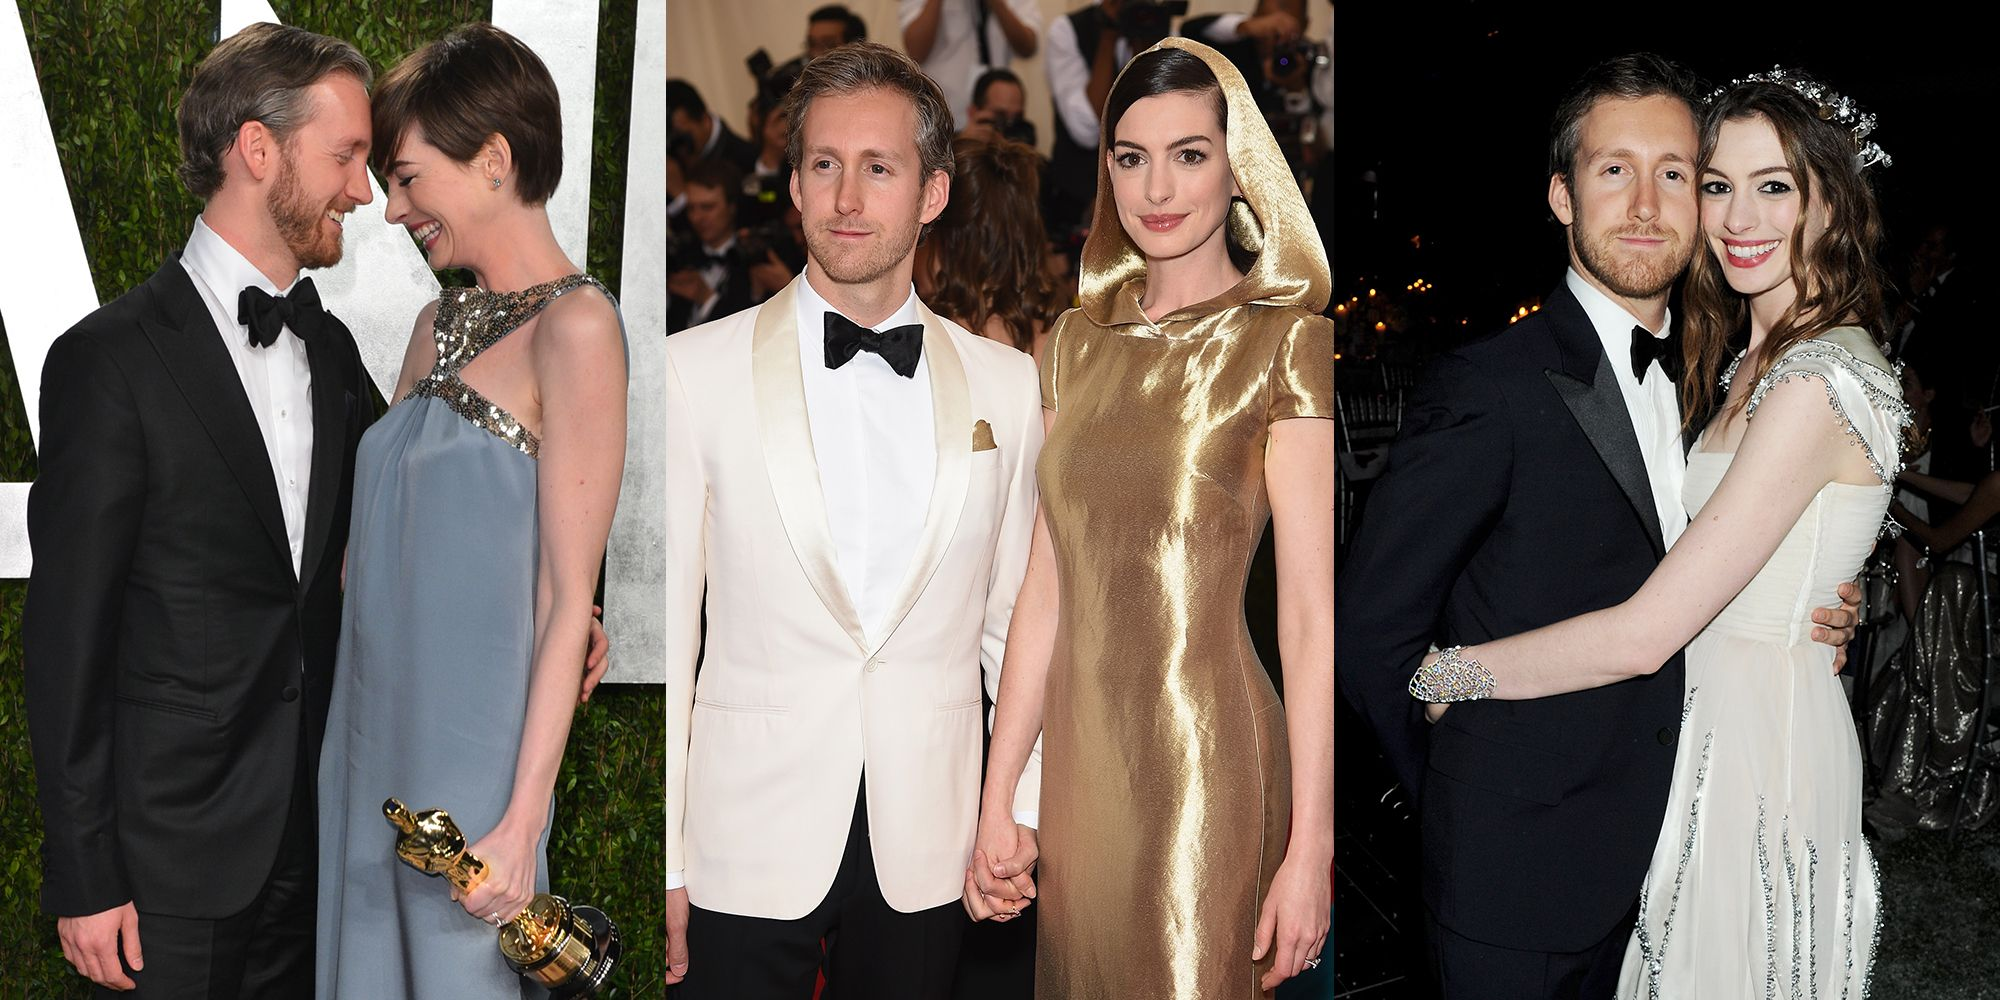 Hathaway and her husband, producer and designer Adam Shulman, split their times between homes outside New York City and Los Angeles.